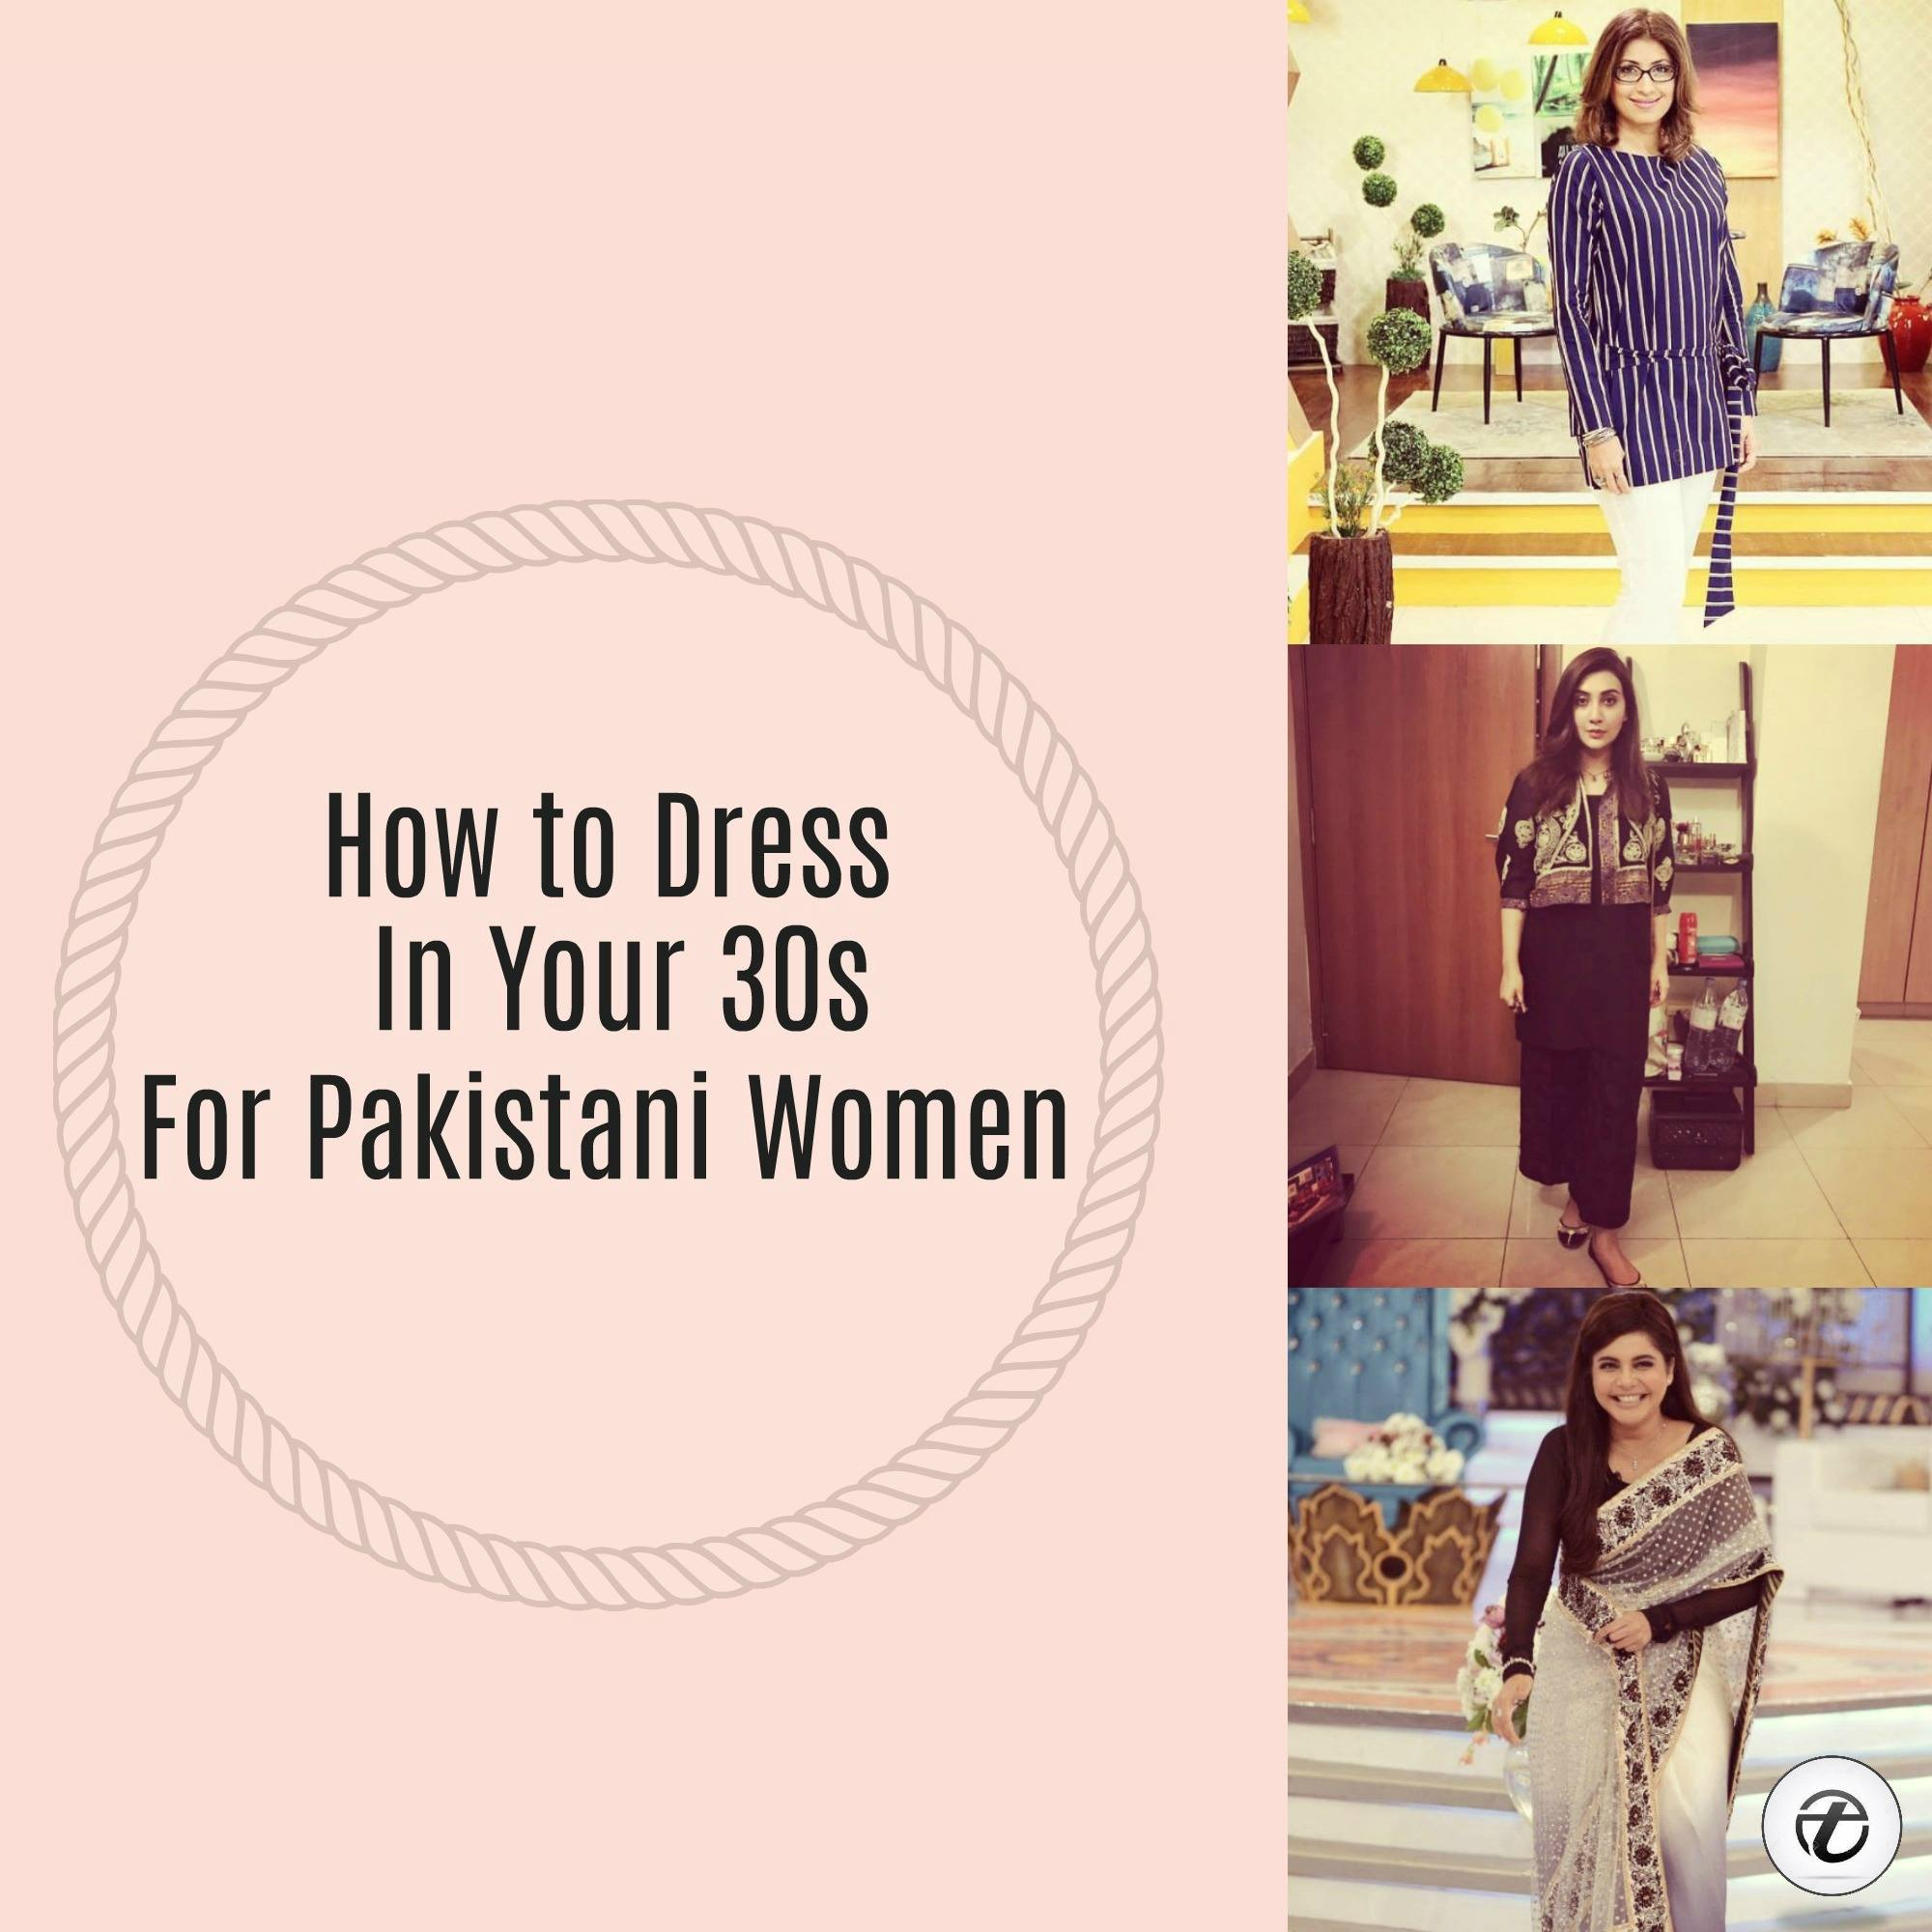 how-to-dress-in-your-30s-for-pakistani-women-1 20 Elegant Outfits for Pakistani Women Over 30